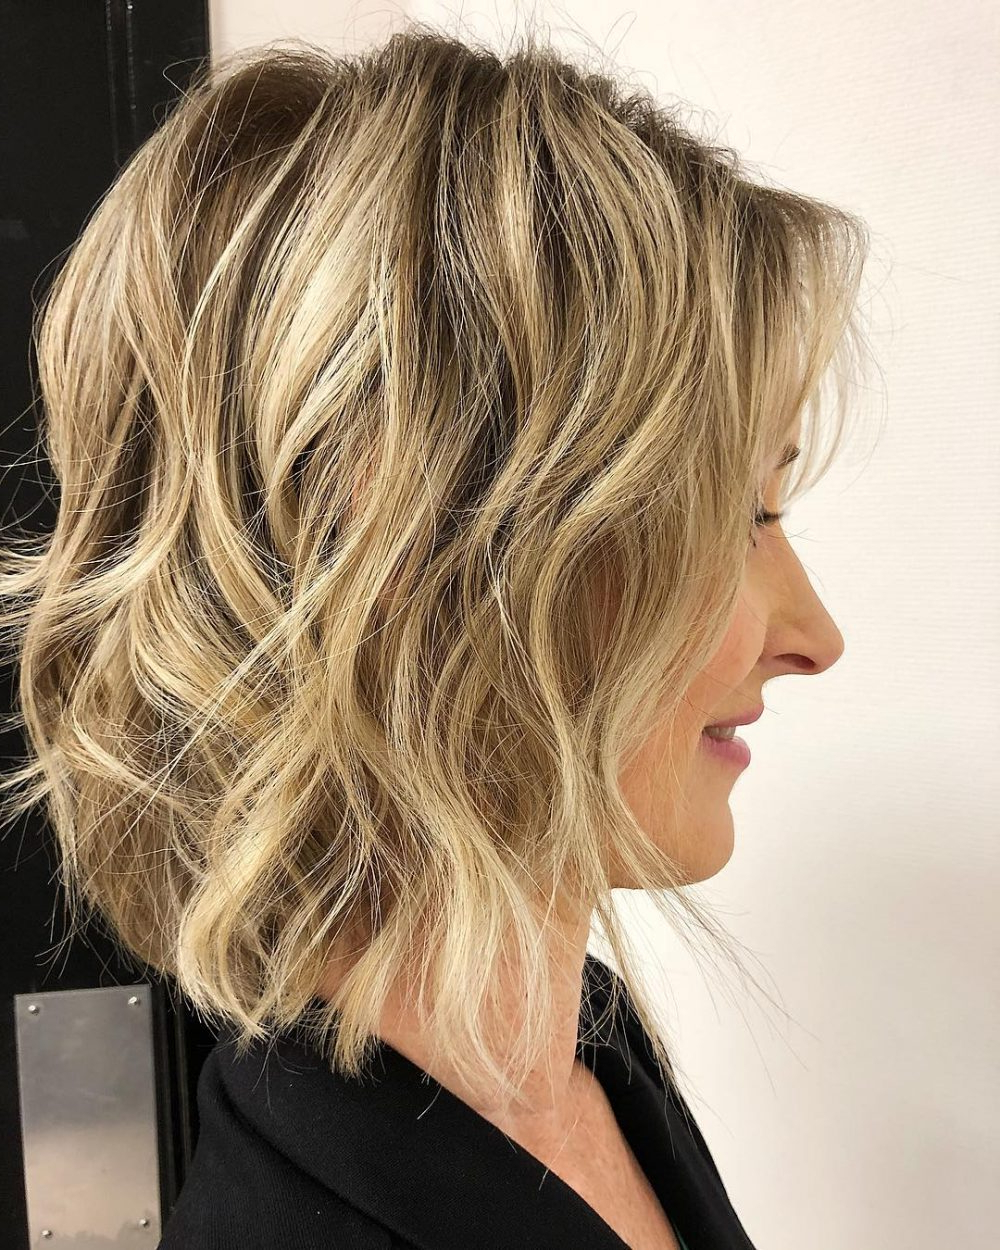 43 Perfect Short Hairstyles For Fine Hair In 2018 Intended For Short Hairstyles For Fine Curly Hair (View 8 of 25)